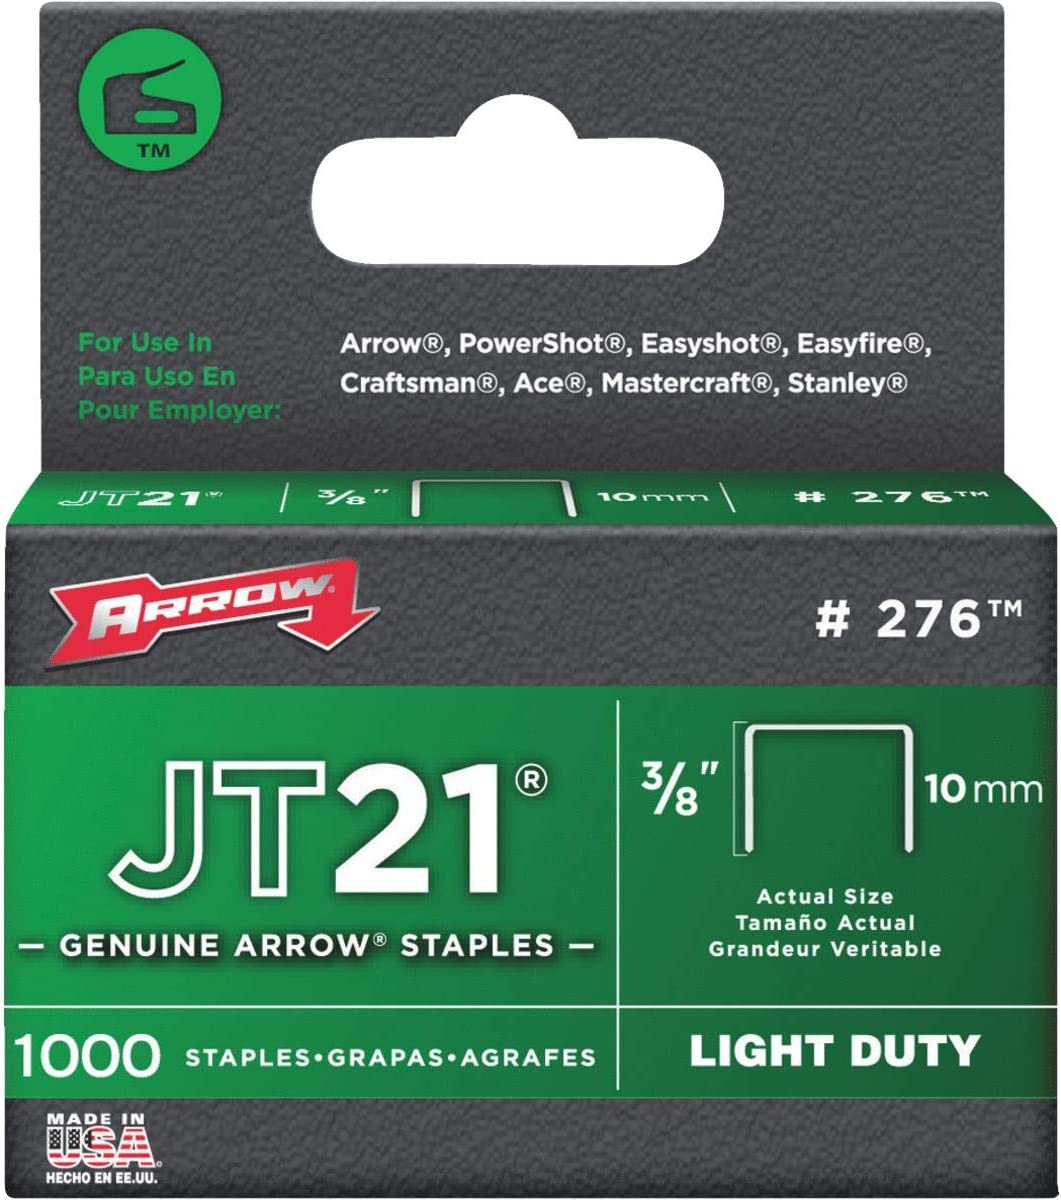 3//8in JT21 T27 Staples 10mm Box 1000 ARRJT2138S Hand Tackers /& Staplers